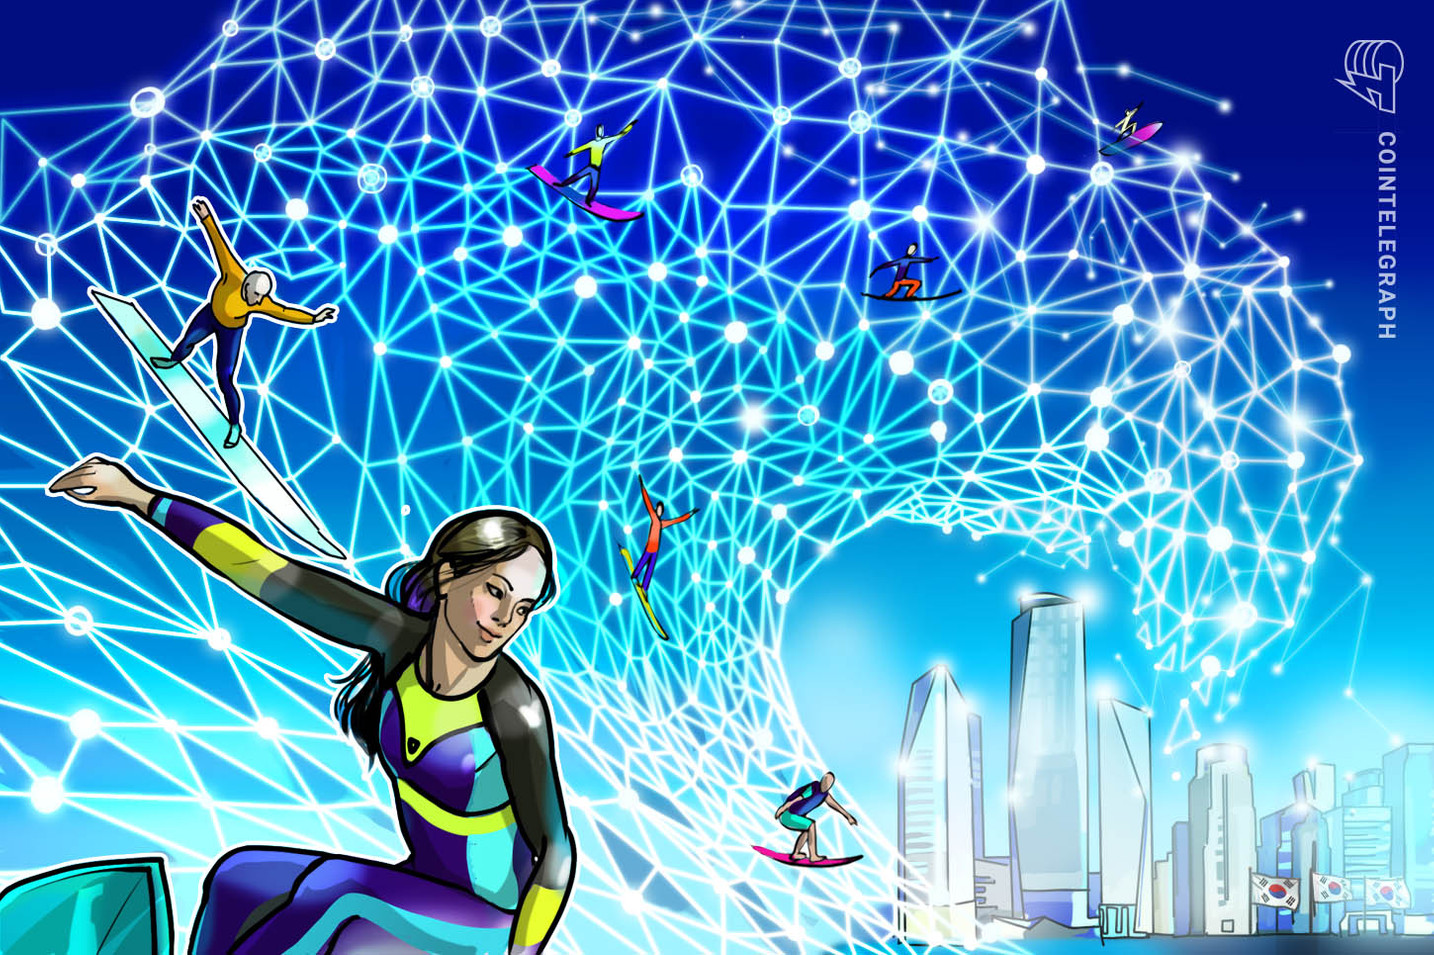 South Korea's Gyeongbuk Province Launches 'Special Committee' to Create Blockchain Hub